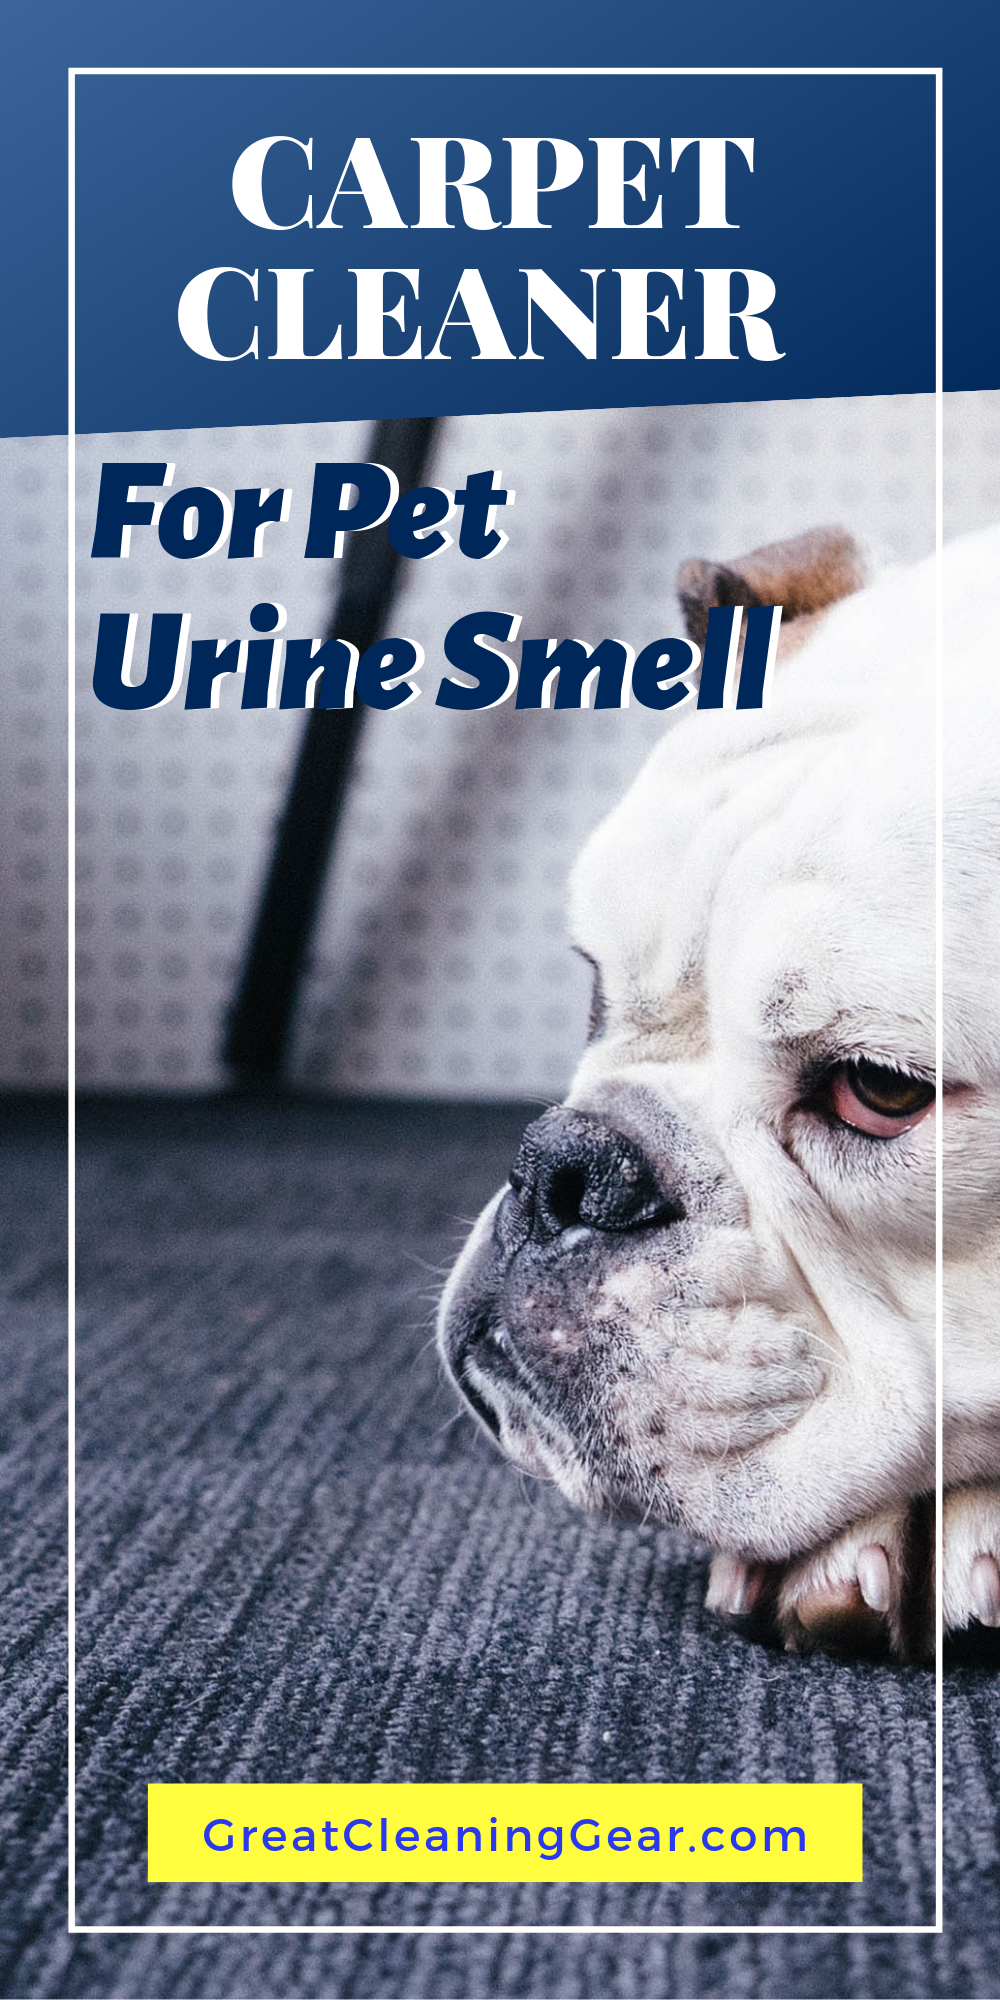 Carpet Cleaner For Pet Urine Smell These Are Amongst The Best Carpet Shampooer For Pet Urine For Homeowners Who Pet Urine Pet Carpet Cleaners Pet Urine Smell